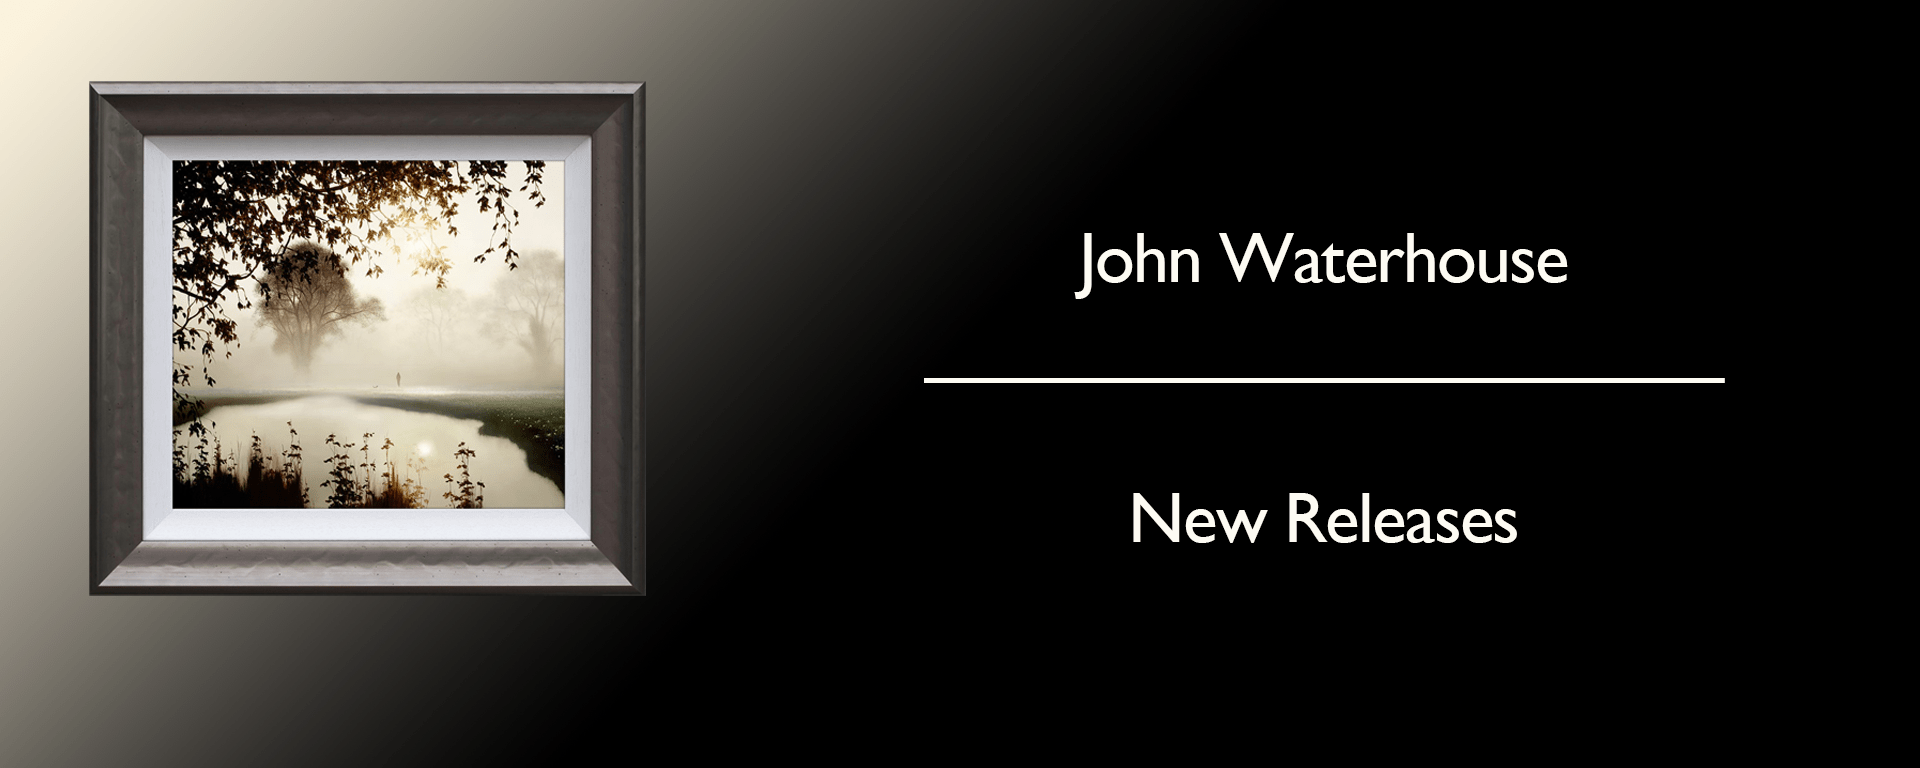 John Waterhouse | New Releases